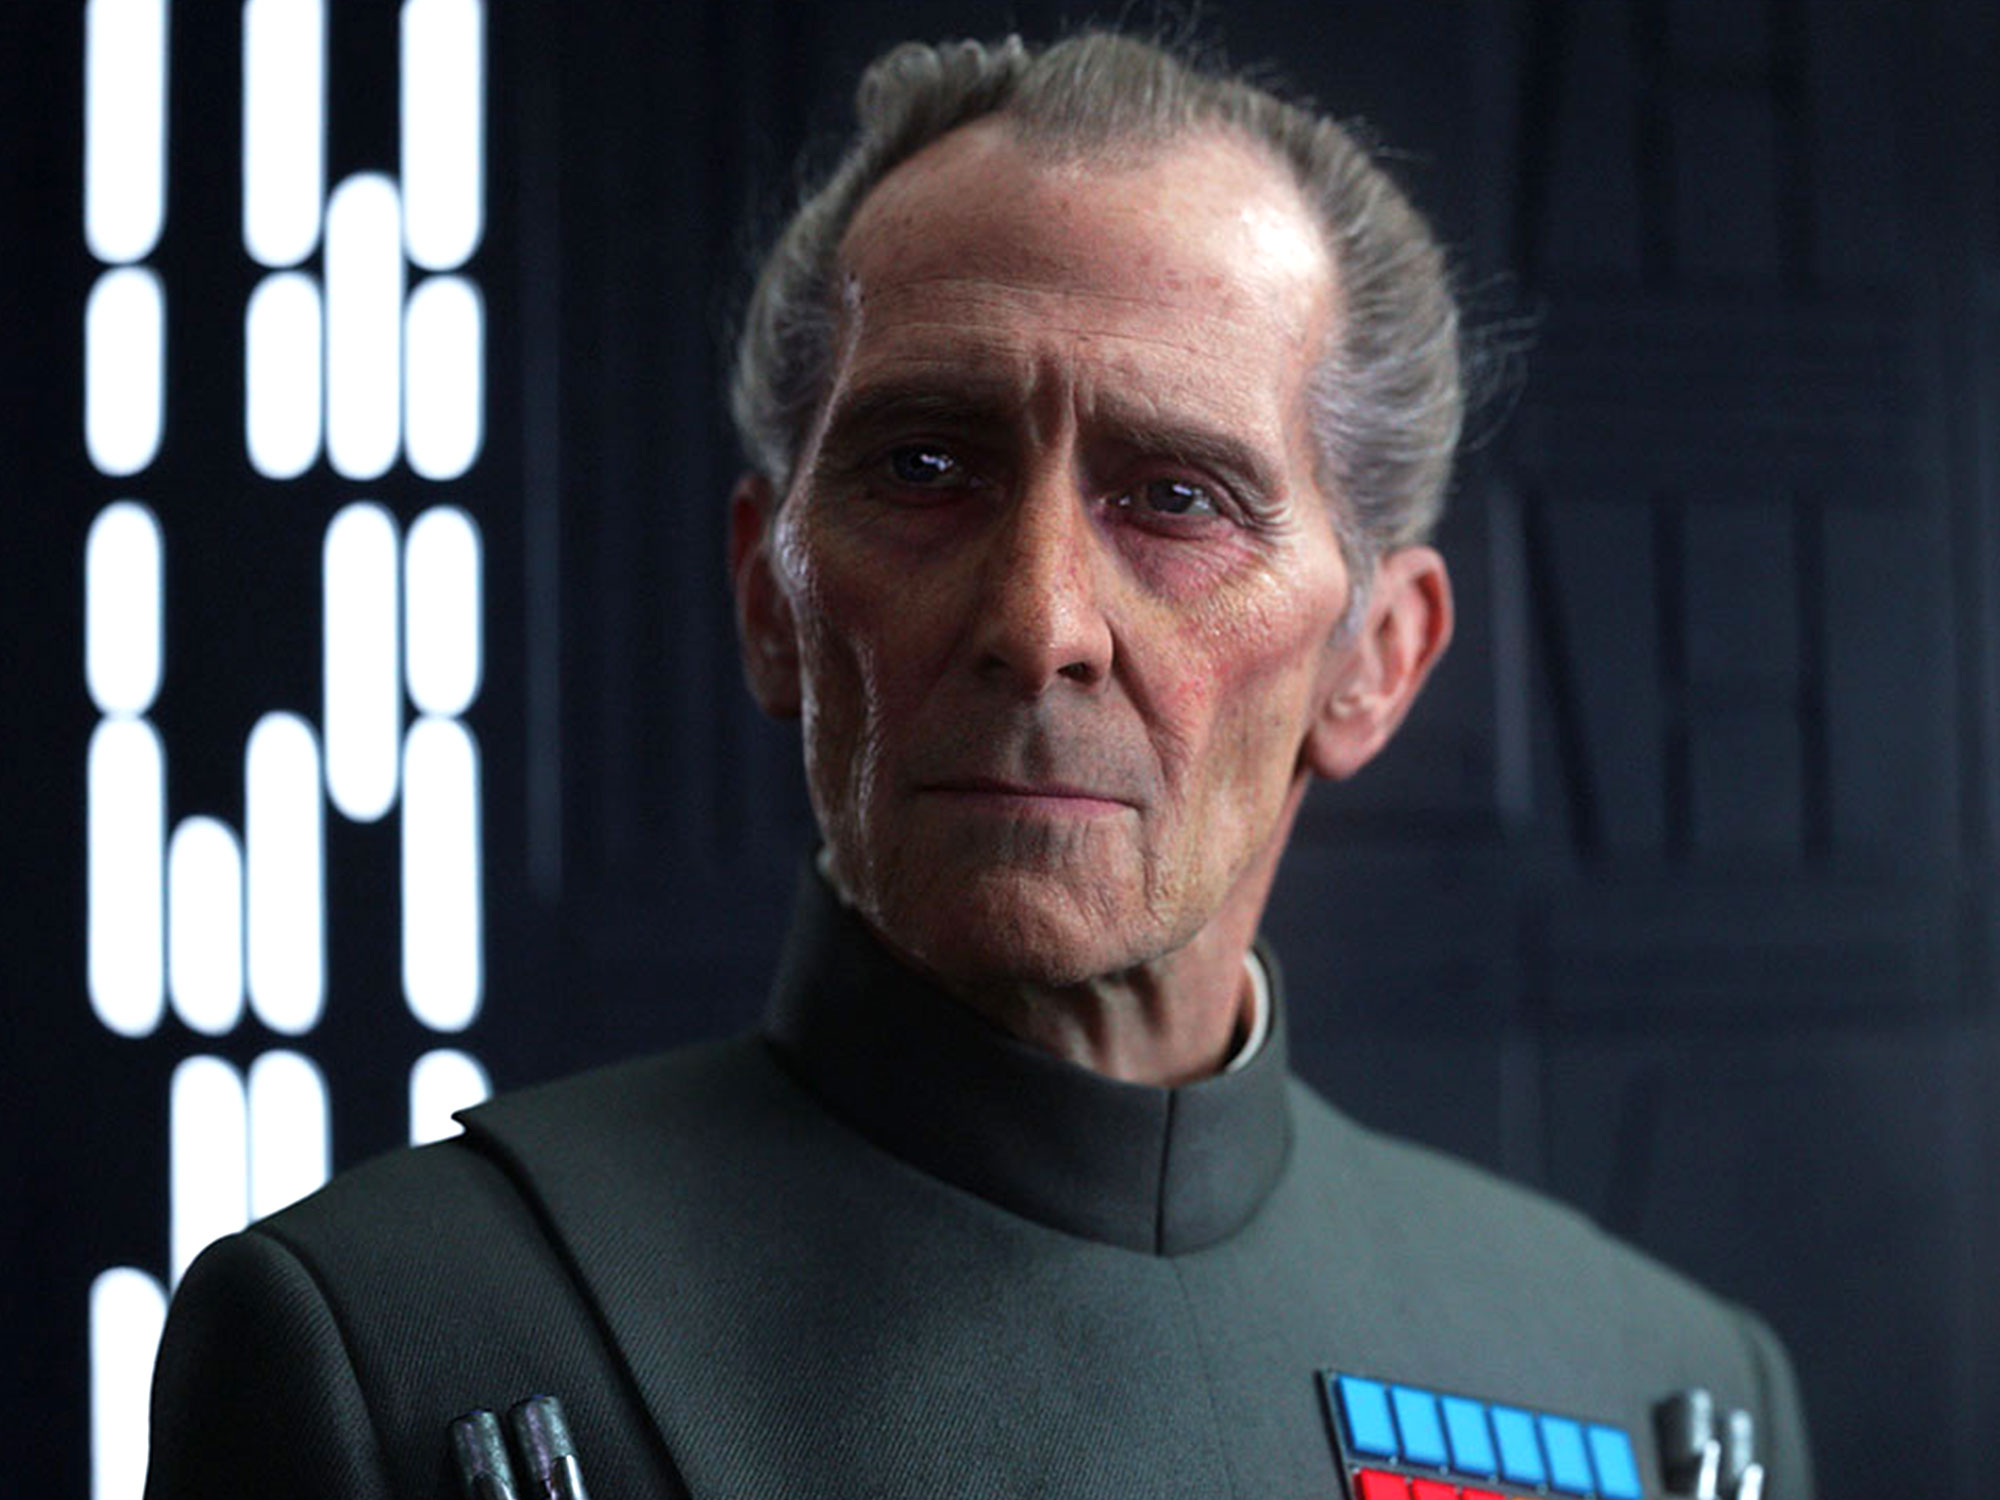 rogue-one-grand-moff-tarkin-peter-cushing.jpg